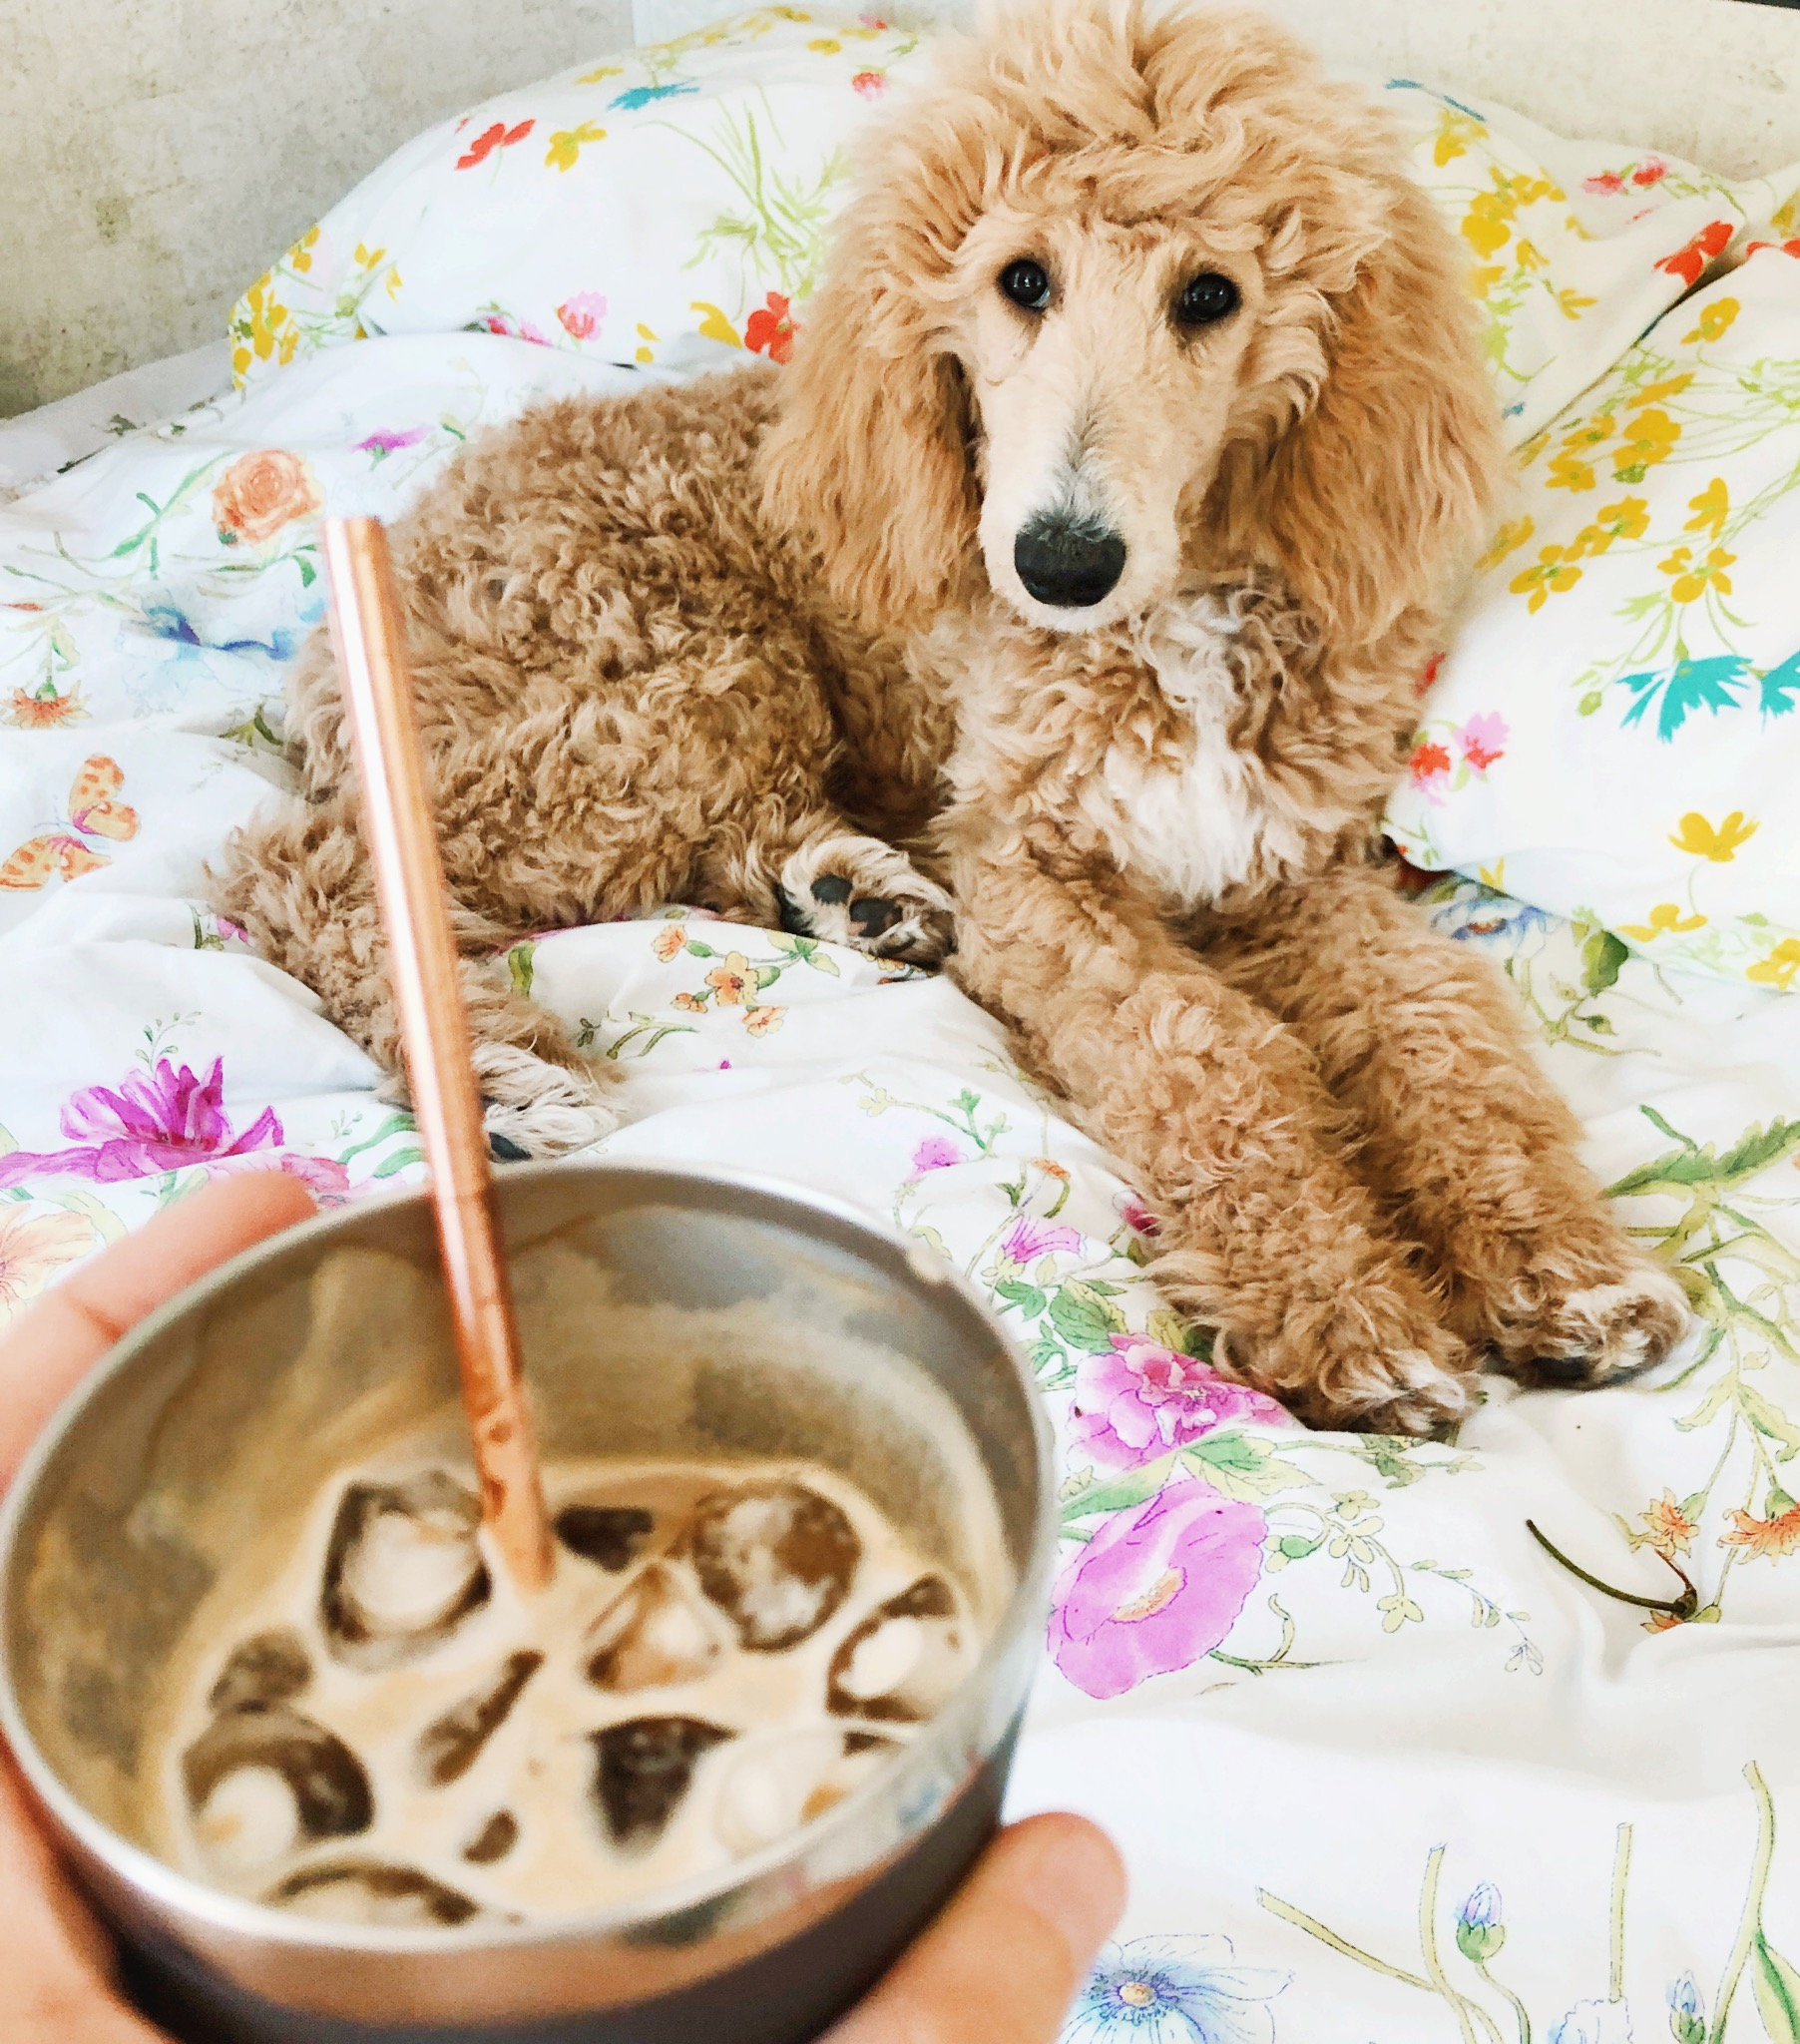 My favorite combo: iced coffee and a cute puppy. It is a win win.